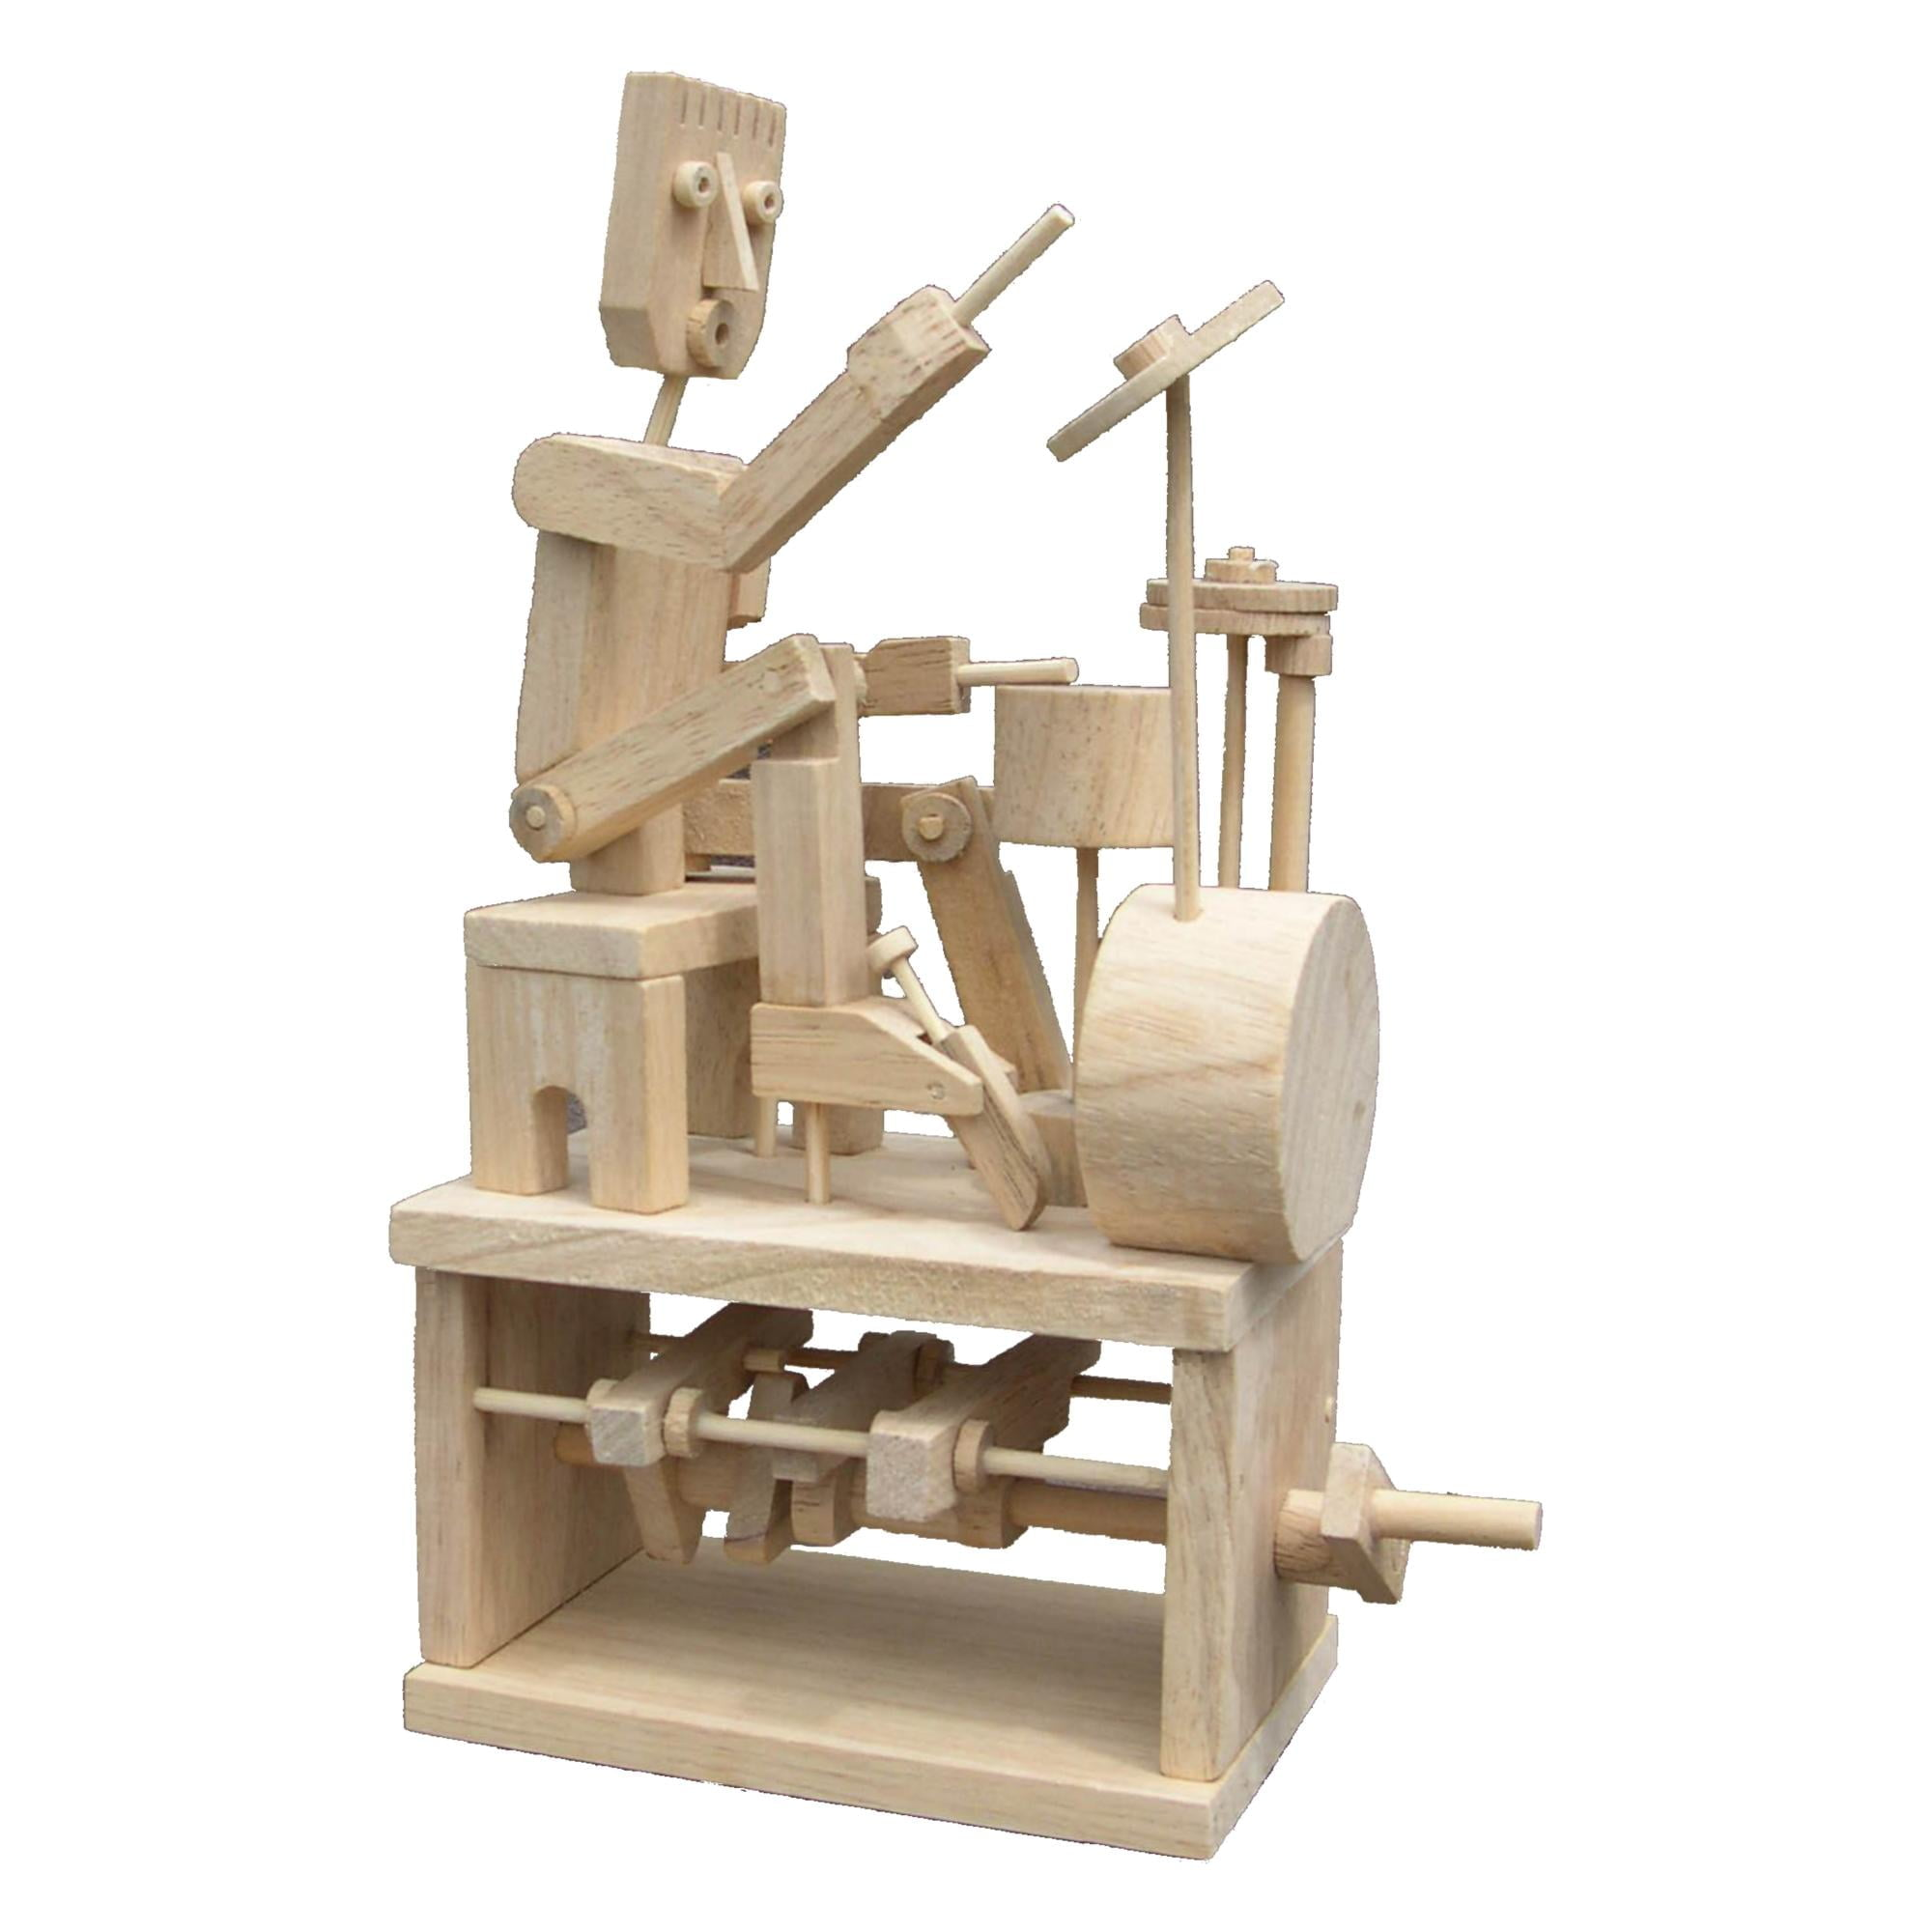 Free Plans To Build Wooden Toys Quick Woodworking Projects